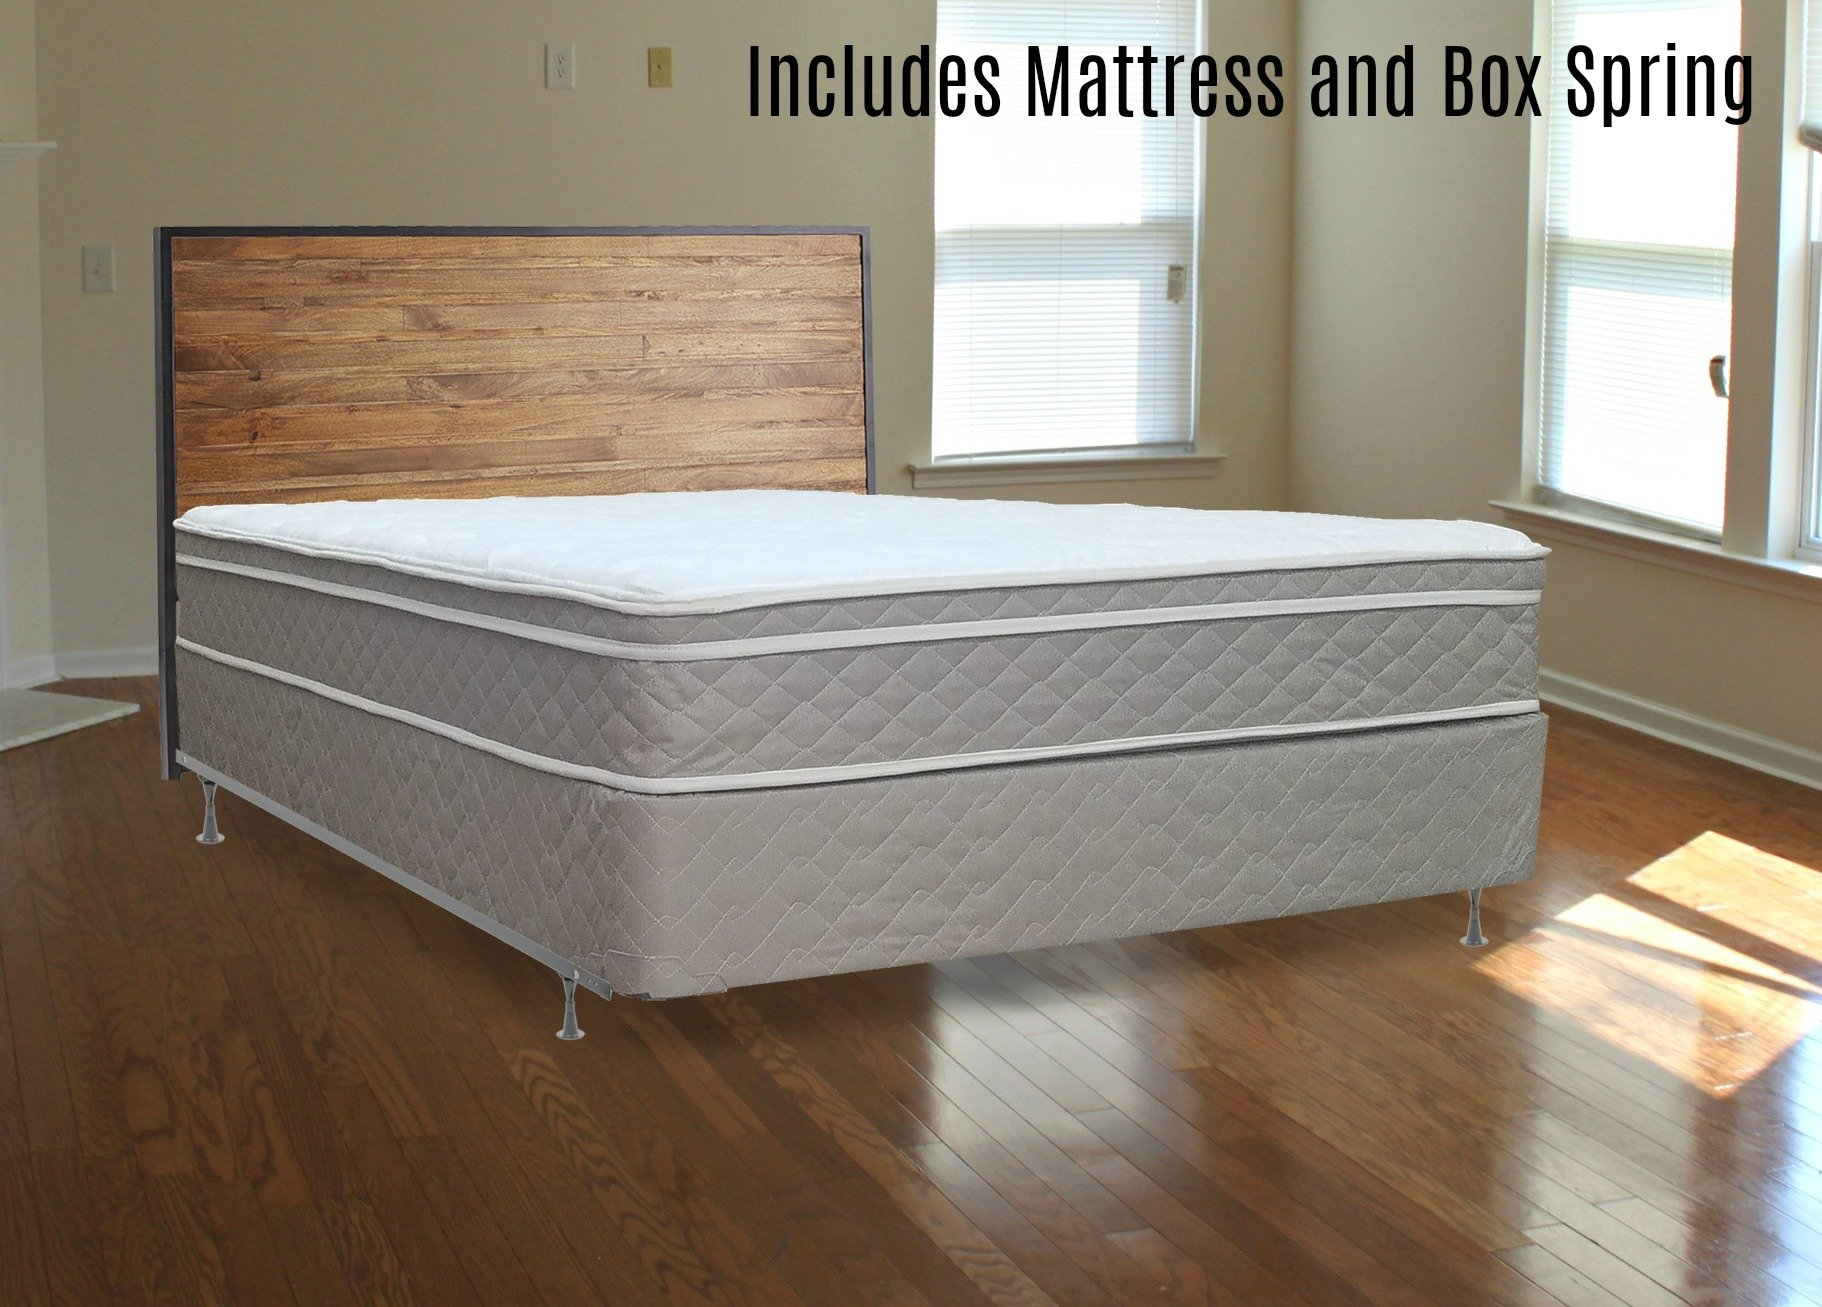 Spinal Solution 440B-3/3-2 10-inch Mattress Twin Size